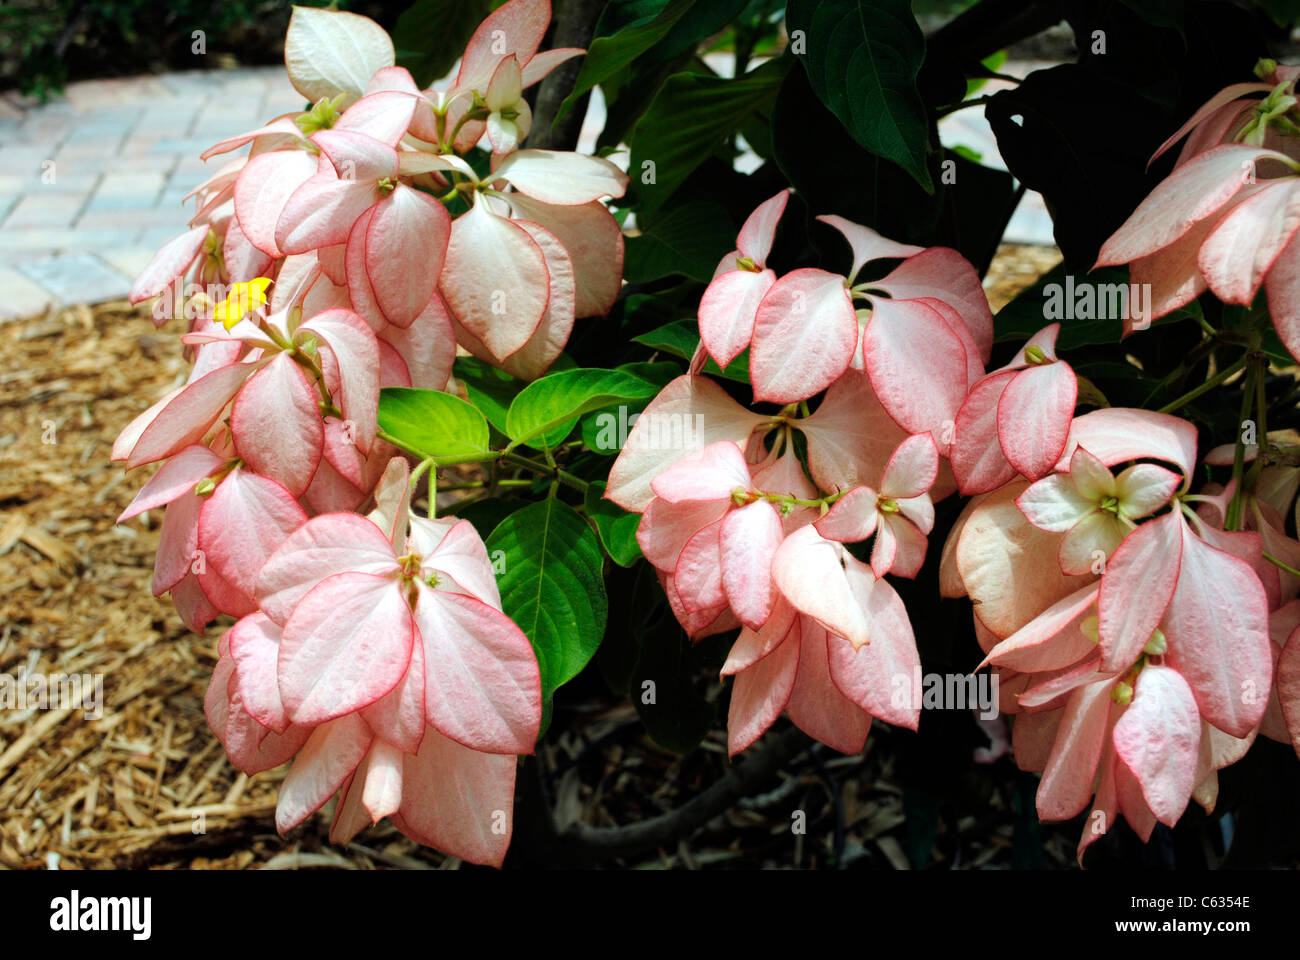 Bunga Merah Muda Stock Photos Images Alamy Mussaenda Philippica Queen Sirkit Image